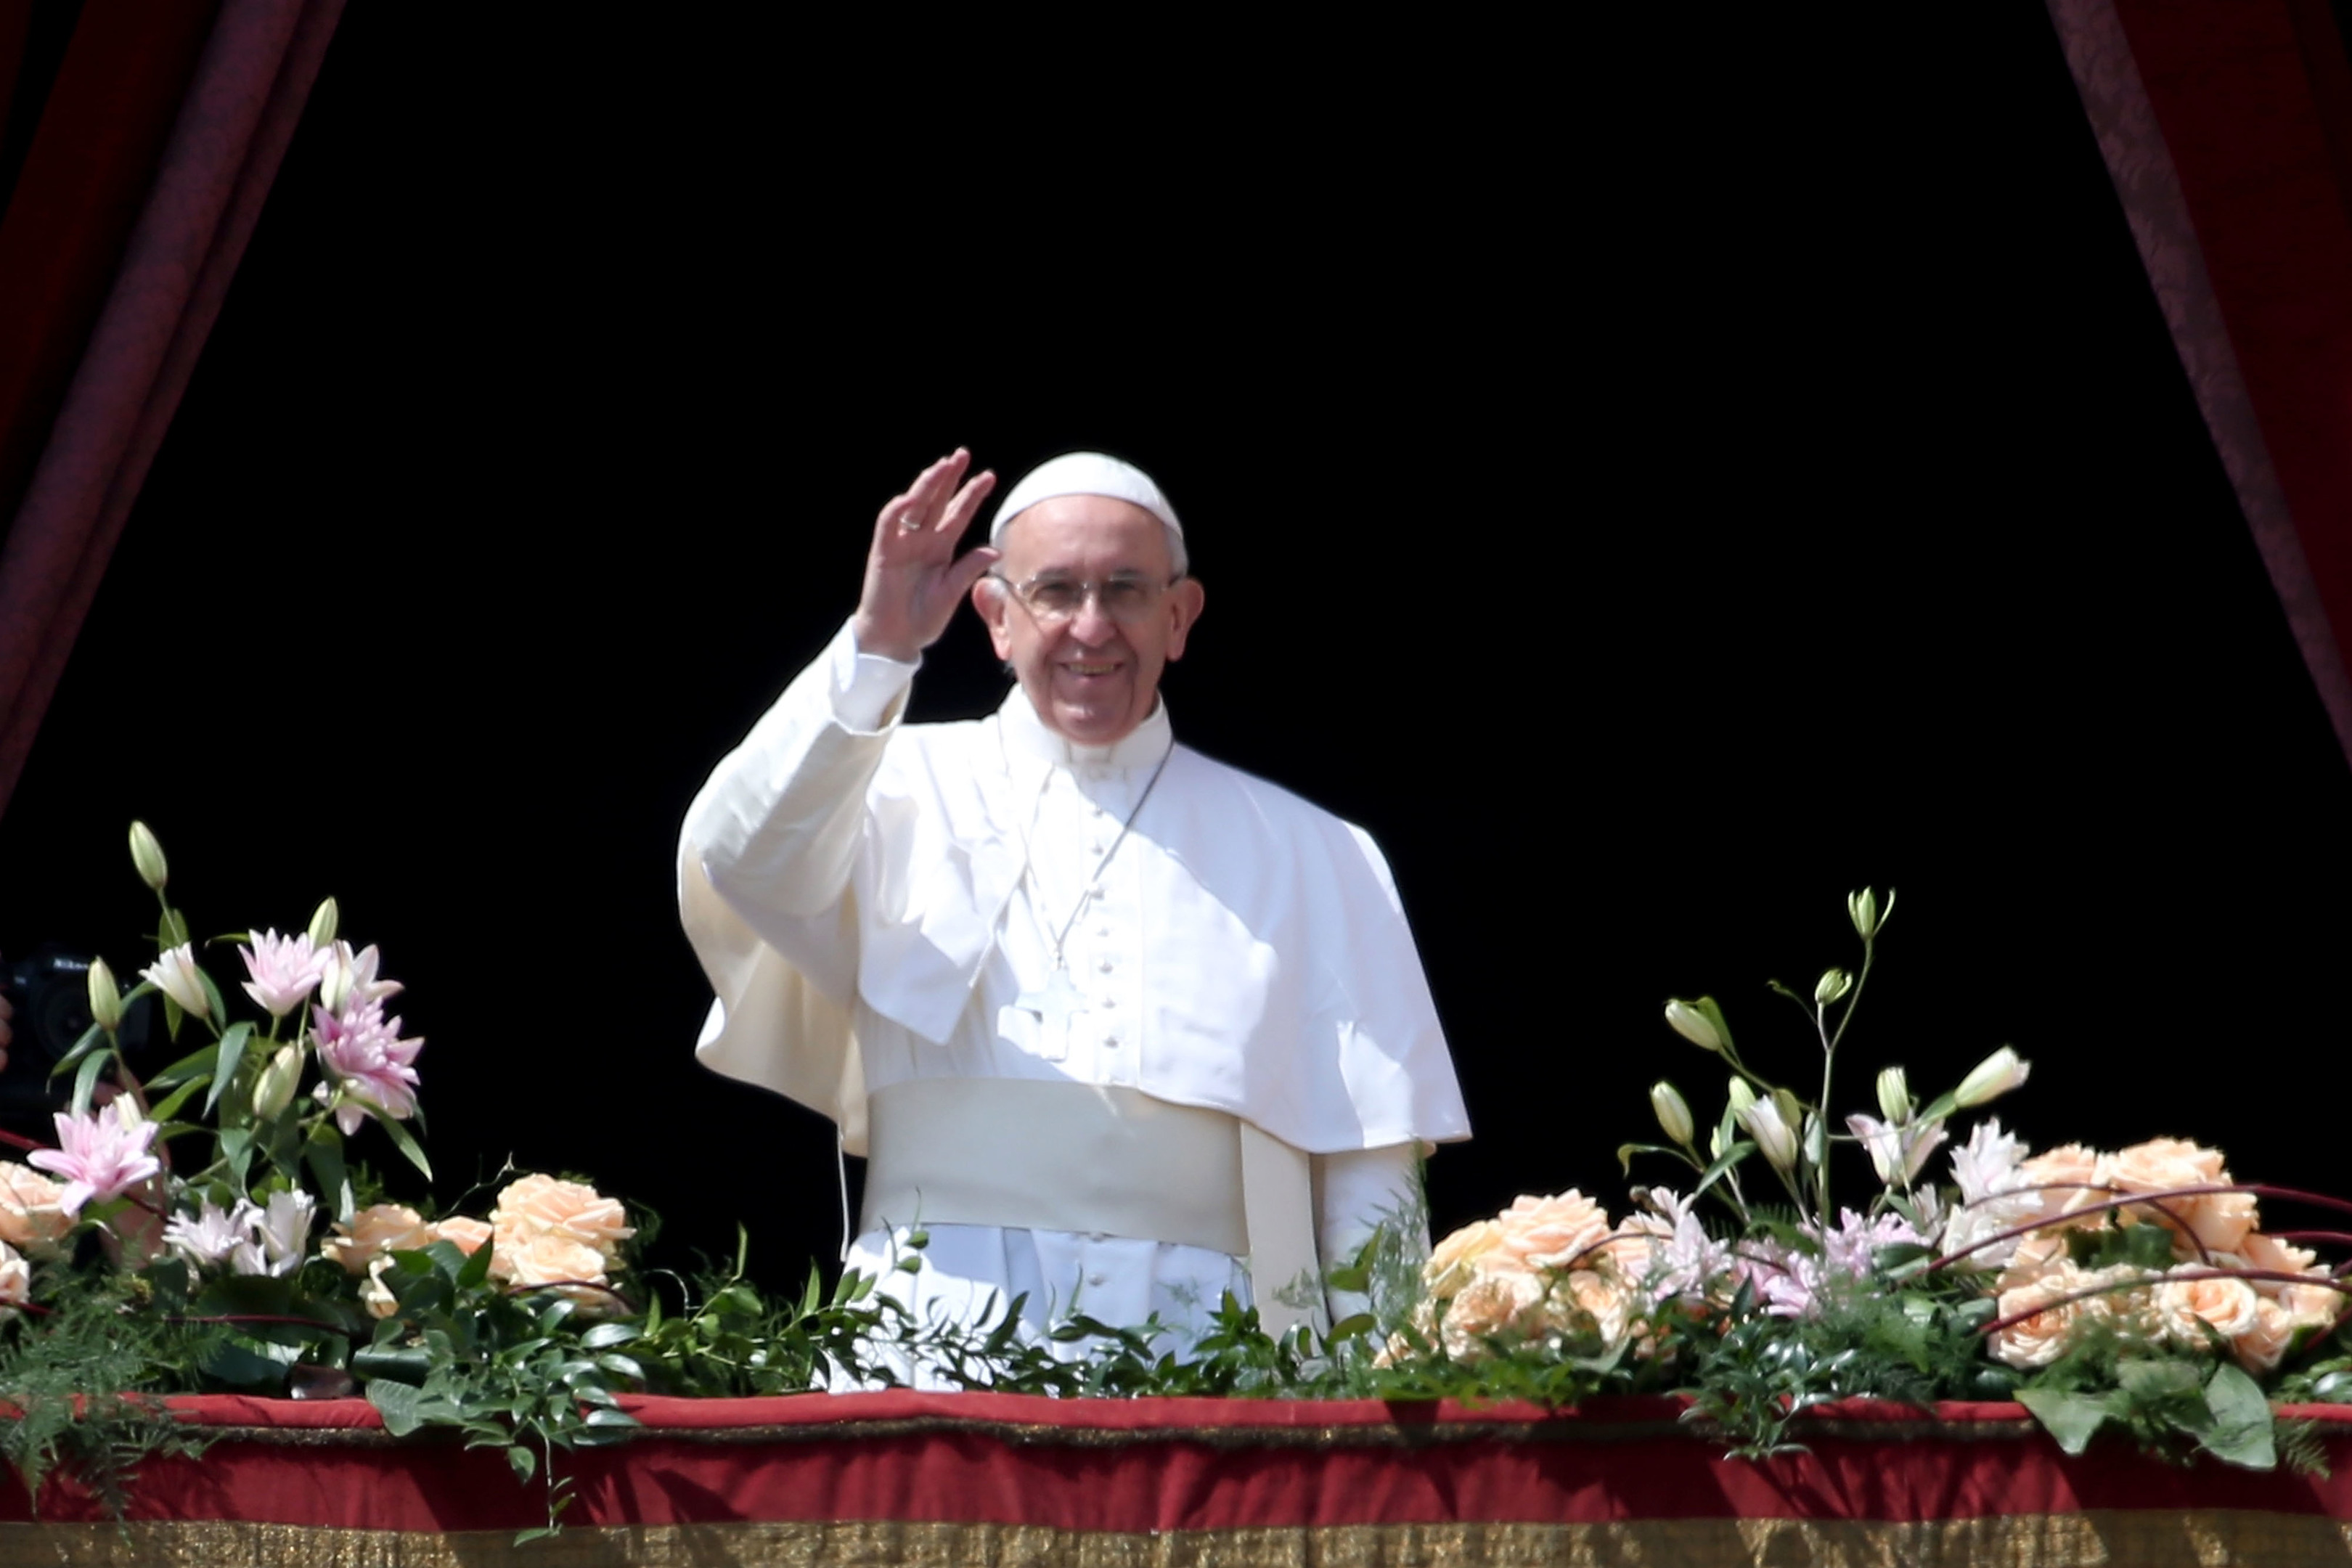 VATICAN CITY, VATICAN - APRIL 16:  Pope Francis delivers his traditional 'Urbi et Orbi' Blessing - to the City of Rome, and to the World - from the central balcony overlooking St. Peter's Square on April 16, 2017 in Vatican City, Vatican. Pope Francis is due to visit Cairo on April 28 and April 29 at the invitation of Coptic Orthodox Pope Tawadros II.  (Photo by Franco Origlia/Getty Images)